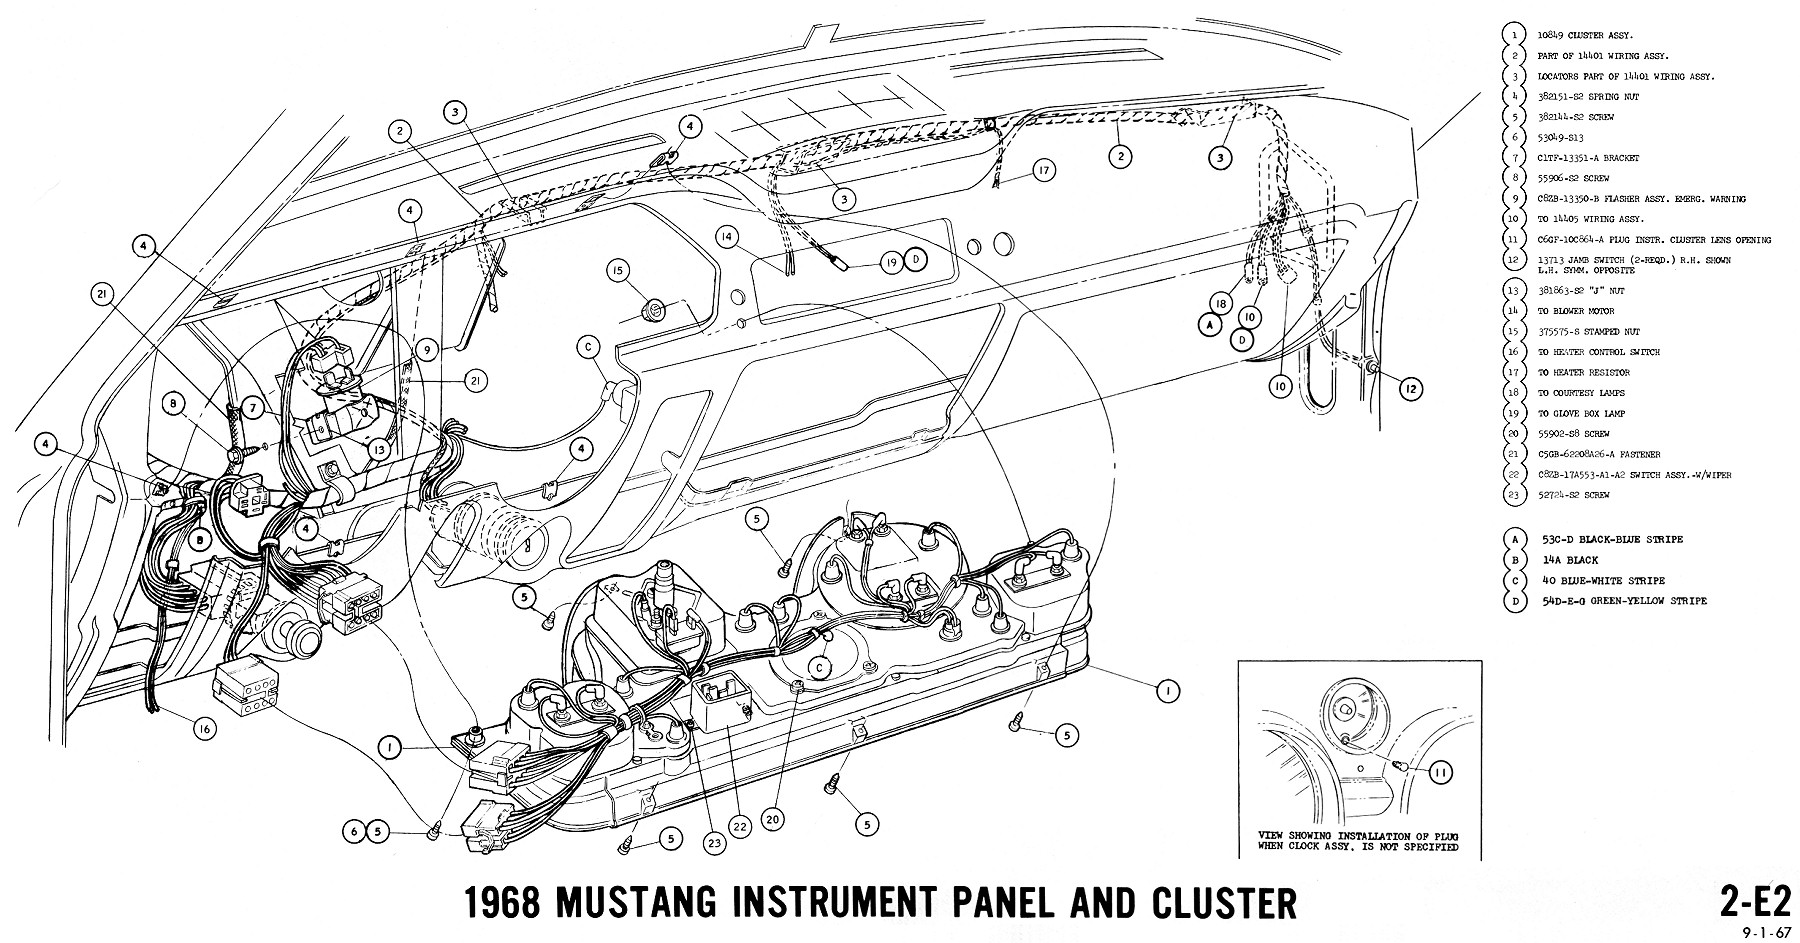 1968 Mustang Wiring Diagram - Hghogoii.newtrading.info • on 1974 corvette wiring diagram, chevy alternator wiring diagram, 1967 c10 chassis, 1967 c10 brake system, 1967 c10 door, chevy tail light wiring diagram, 1967 c10 rear suspension, 1967 c10 engine, 1967 c10 frame, 1967 c10 parts, 87 corvette wiring diagram, 1967 c10 exhaust, 1967 c10 headlights, 1967 c10 radiator, 1967 c10 battery, chevy truck wiring diagram, 63 corvette wiring diagram, 82 corvette wiring diagram, 1967 c10 air conditioning, 1967 c10 wheels,